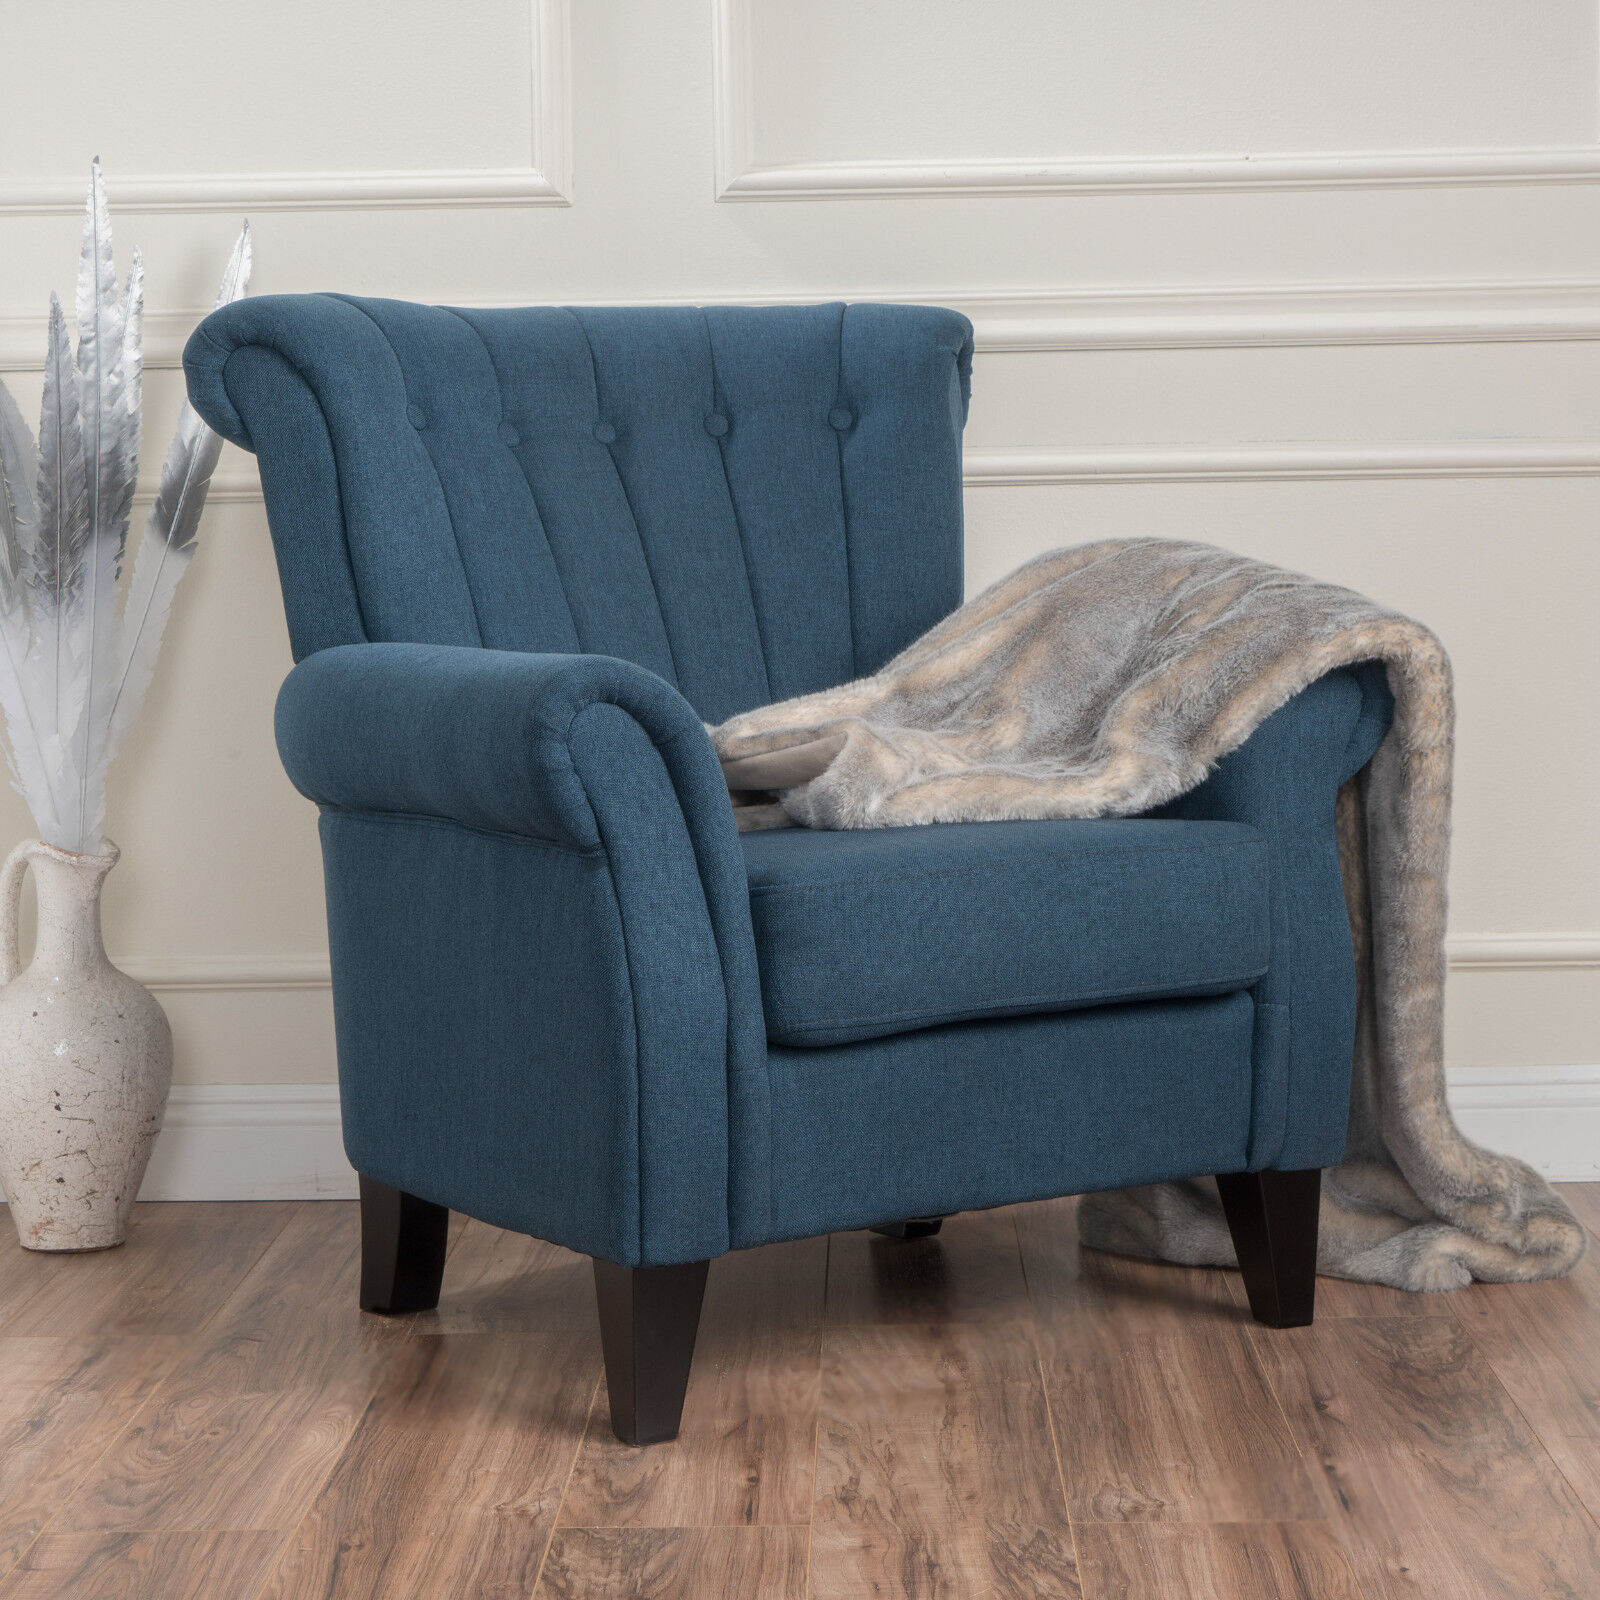 Romee Contemporary Channel Stitch Fabric Club Chair with Scrolled Arms Chairs